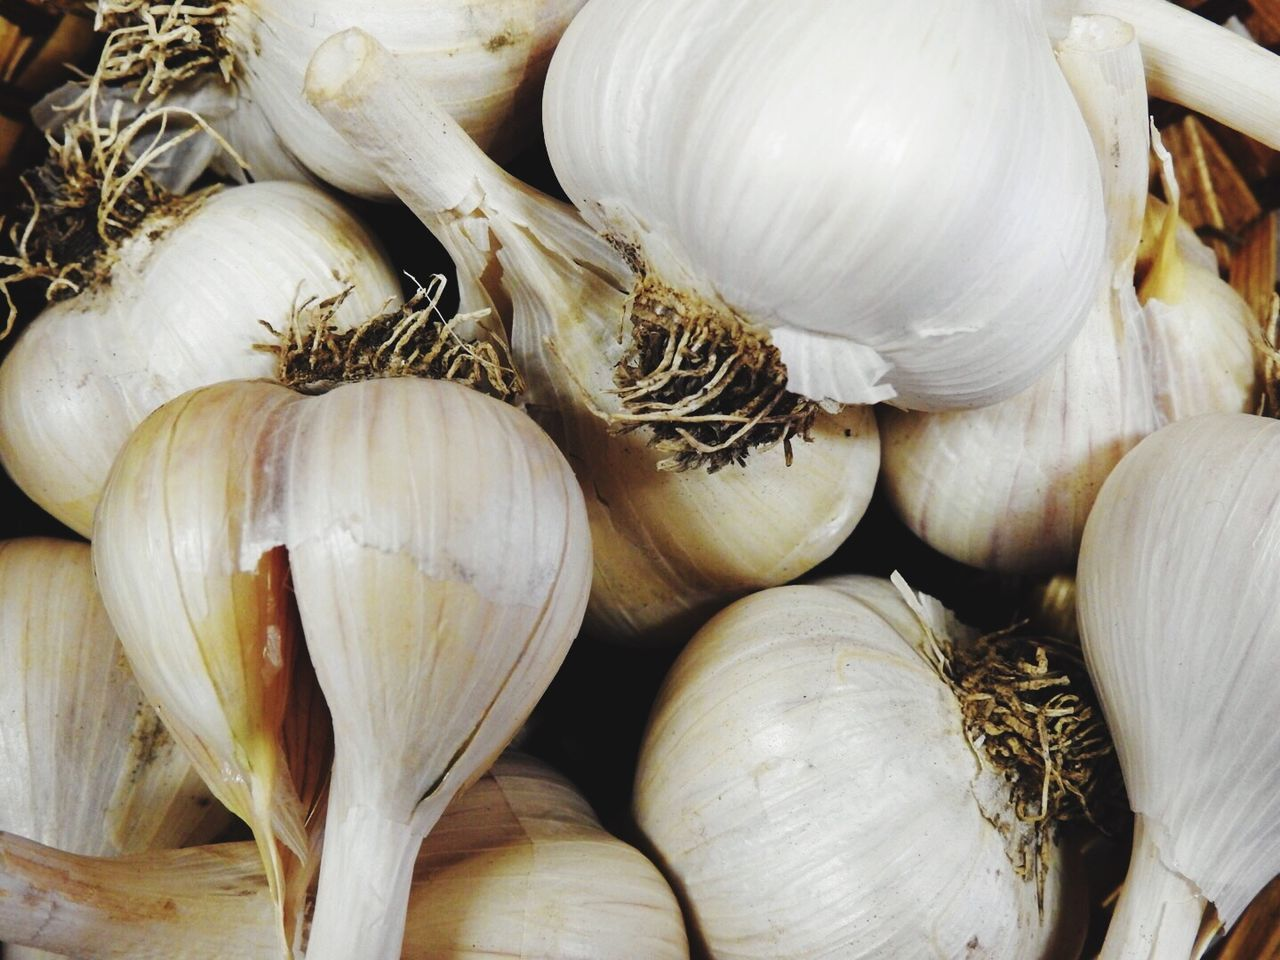 Food Food And Drink Healthy Eating Freshness Garlic Garlic Bulb No People Close-up Backgrounds Indoors  Garlic Clove Day